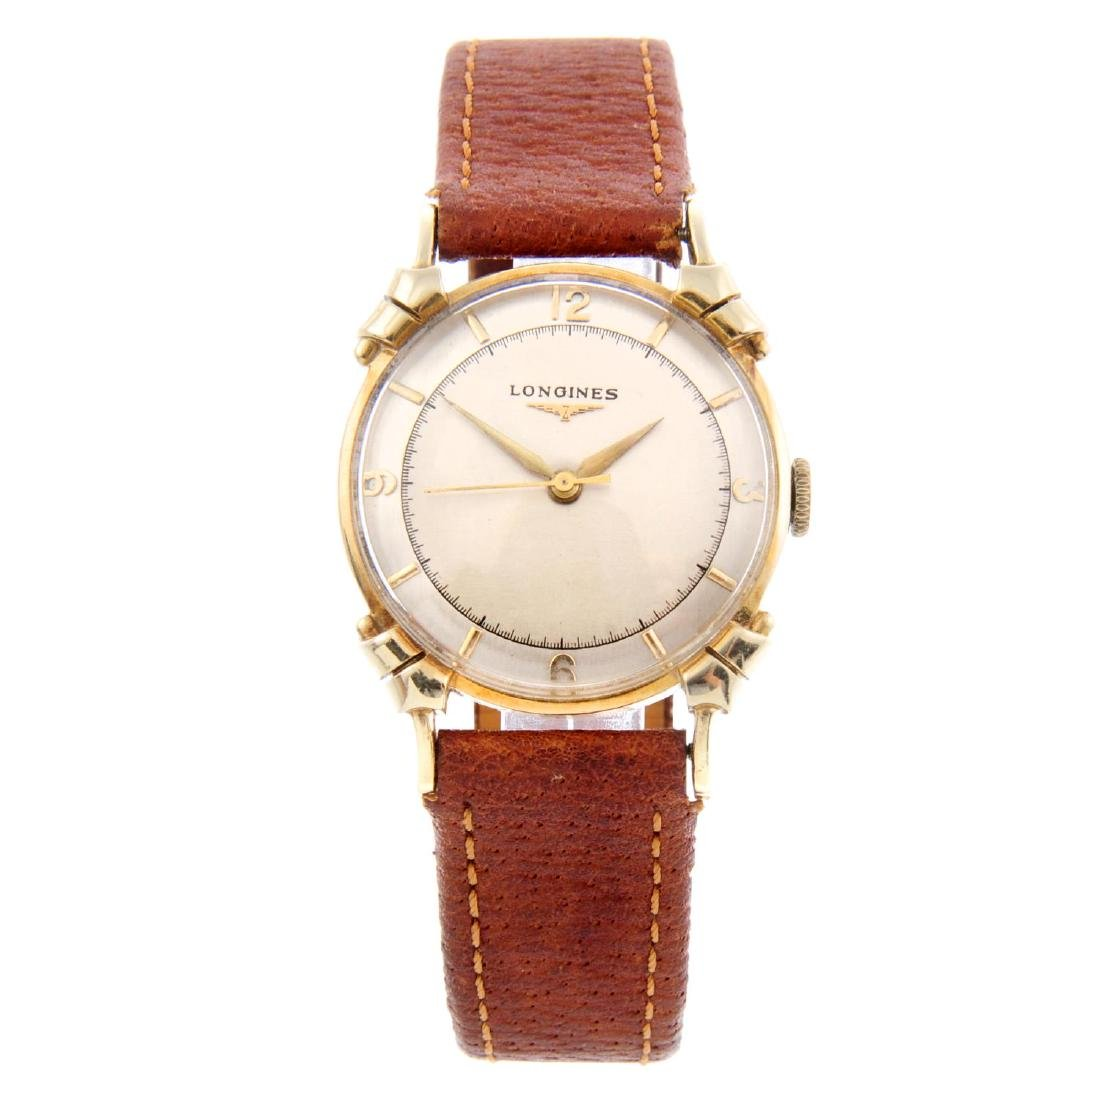 LONGINES - a gentleman's wrist watch. Yellow metal